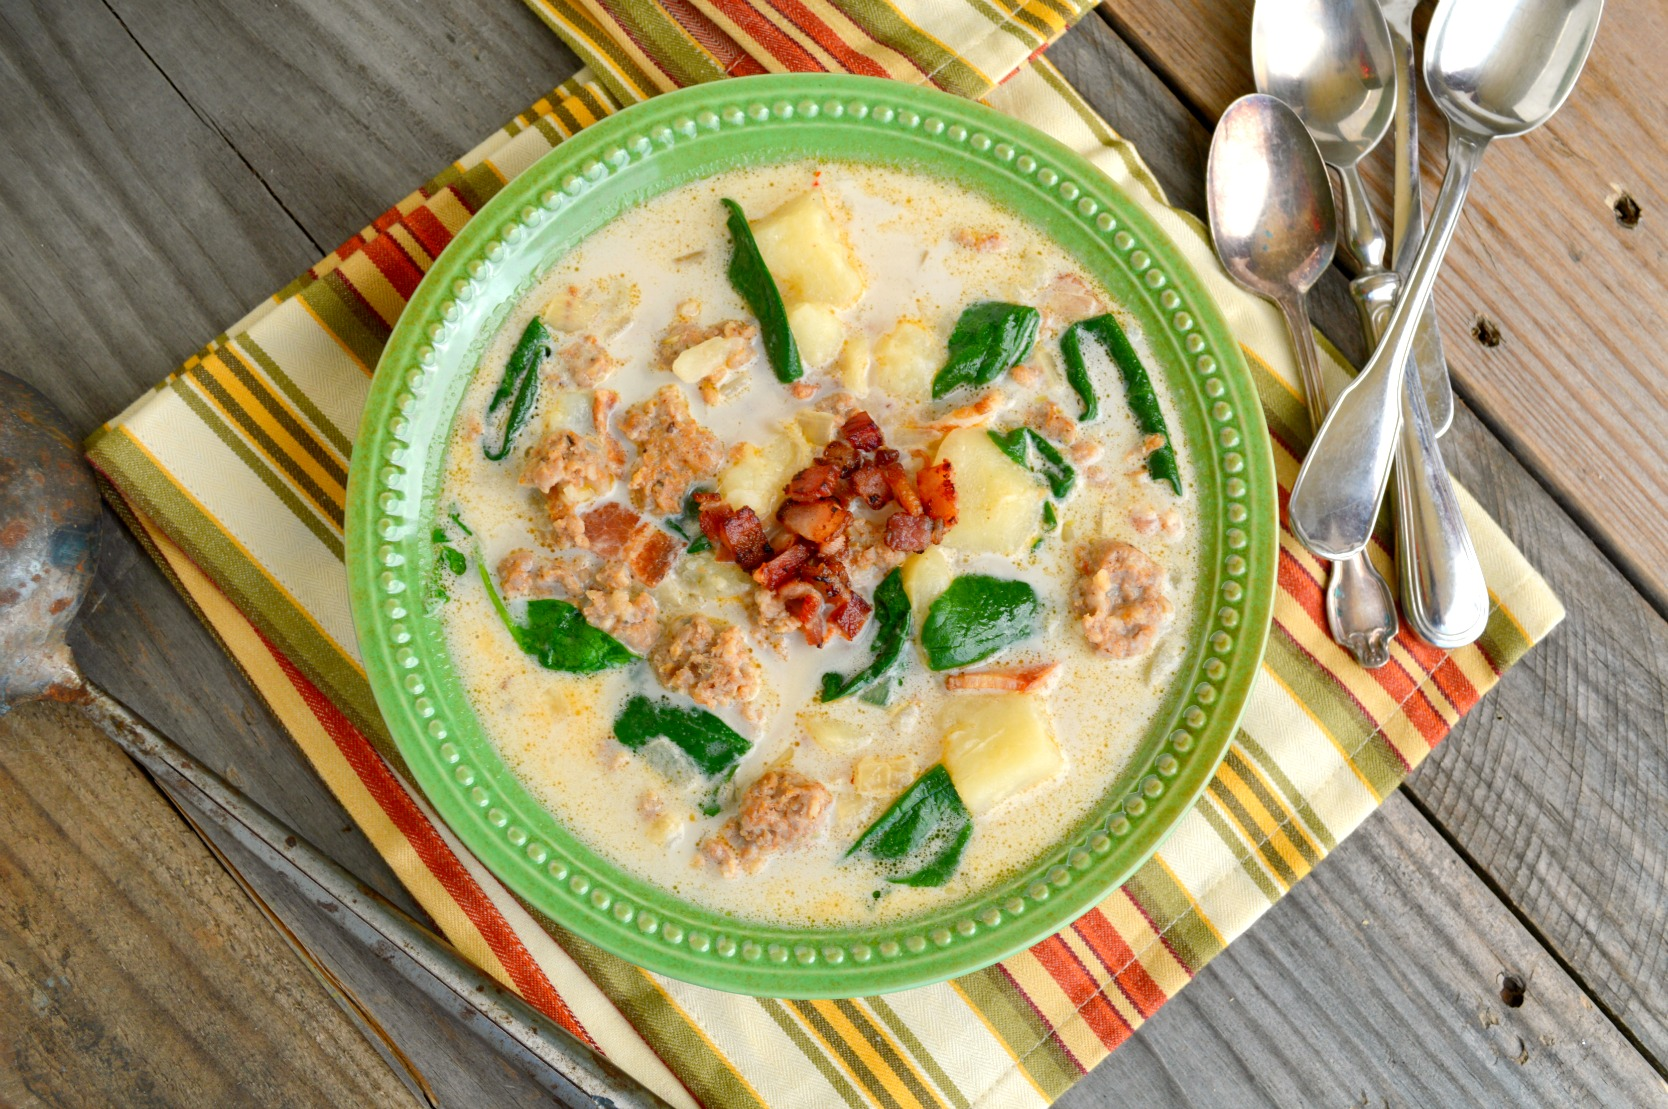 This Zuppa Toscana Recipe is quick and easy to make. Takes only 30 minutes. Makes the best copycat version of this soup!